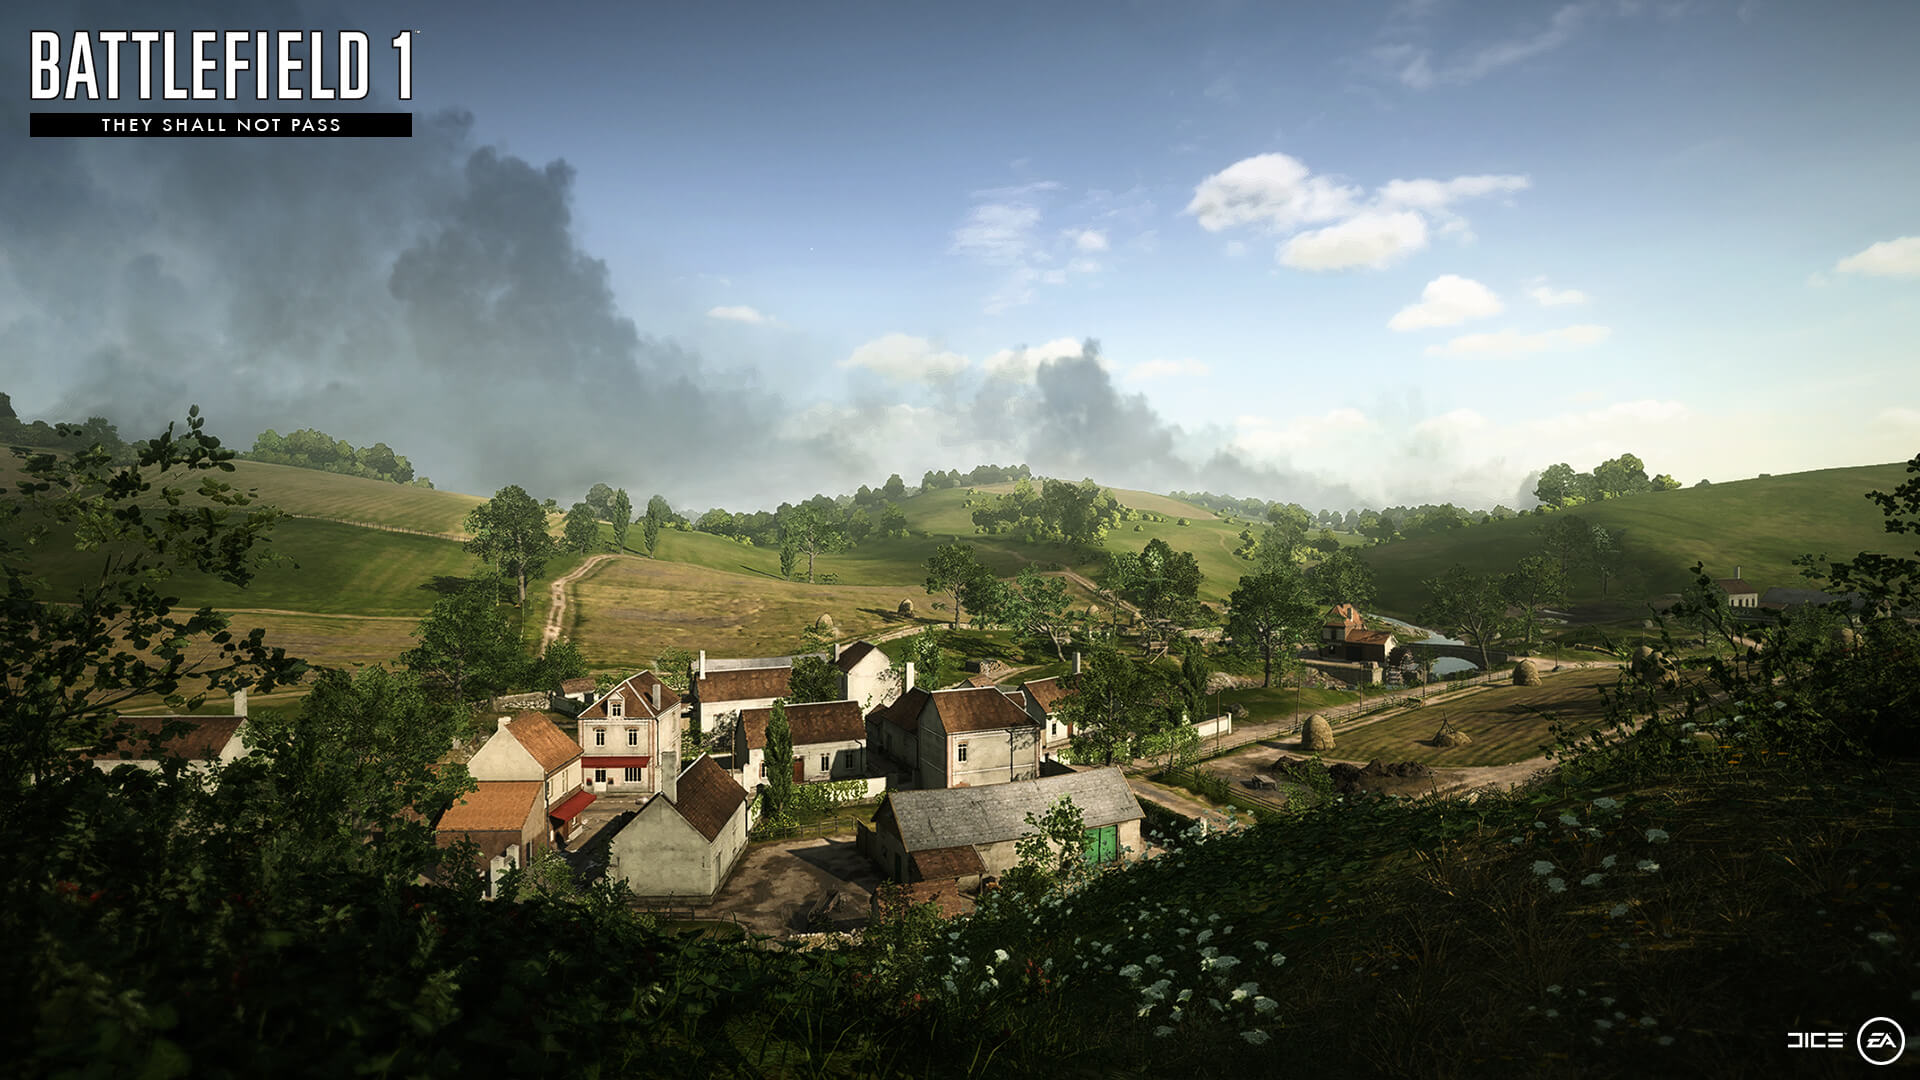 battlefield_1_they_shall_not_pass (3)